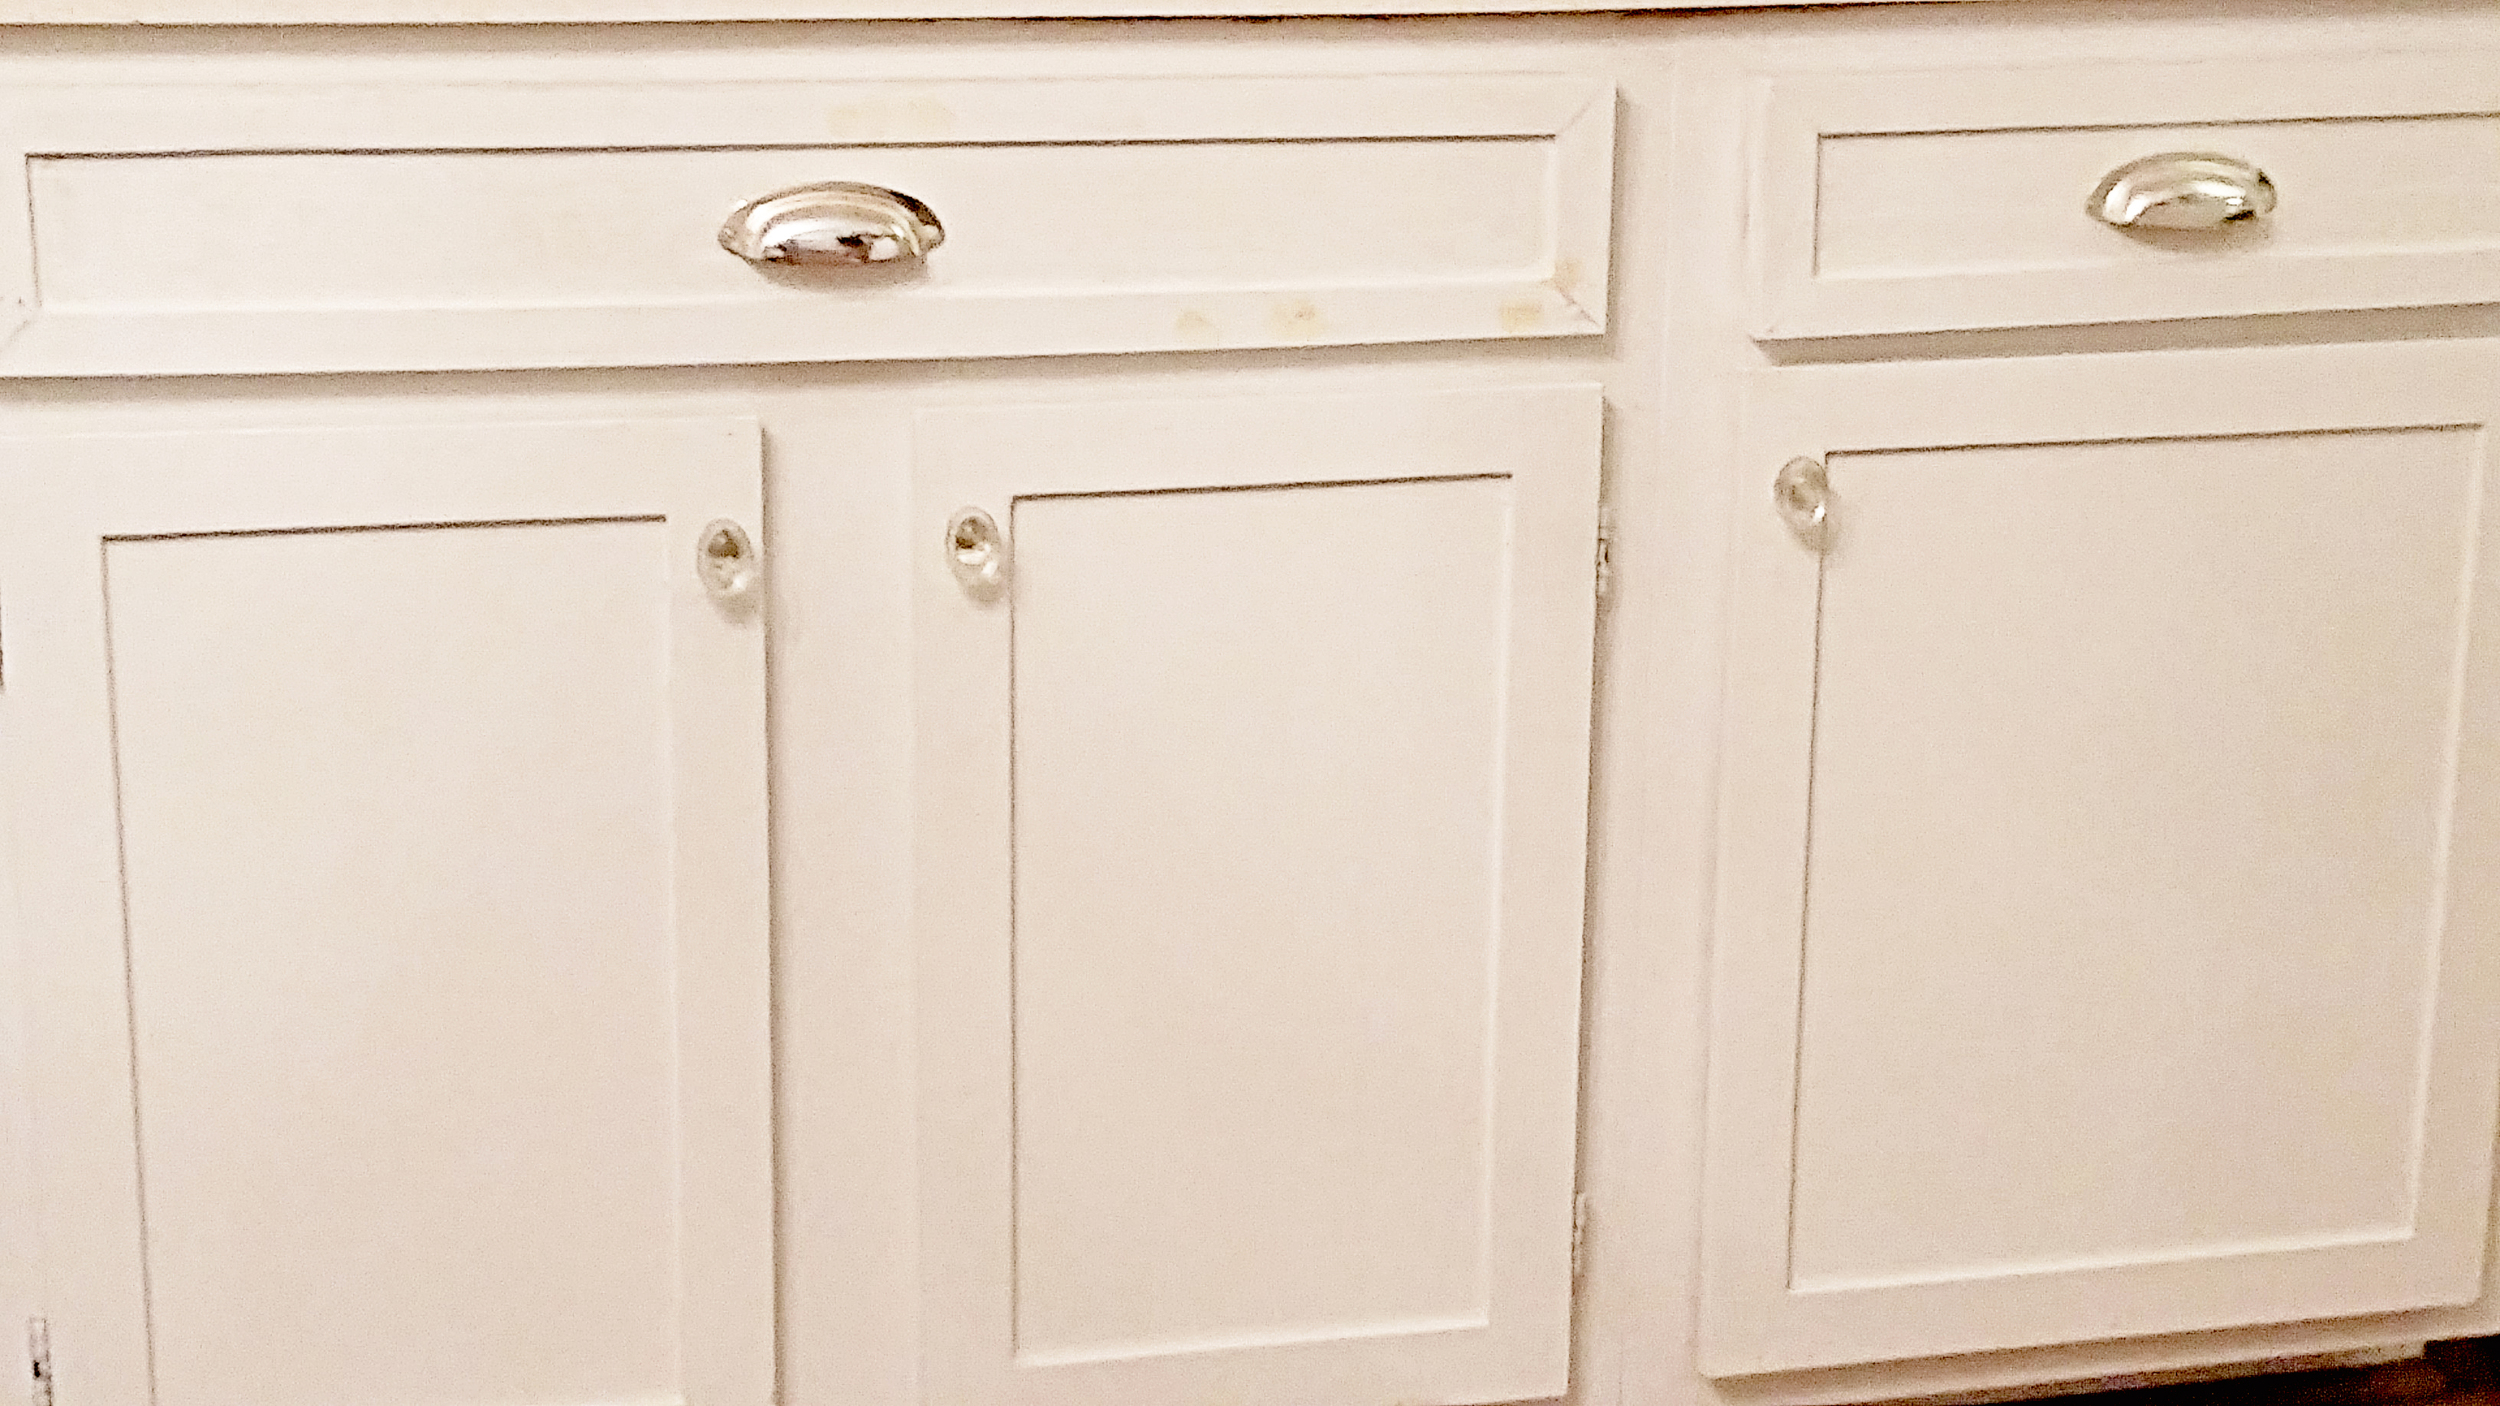 Elizabeth Burns Design | DIY Shaker trim, update flat panel cabinets, 50s cabinet makeover, before and after kitchen